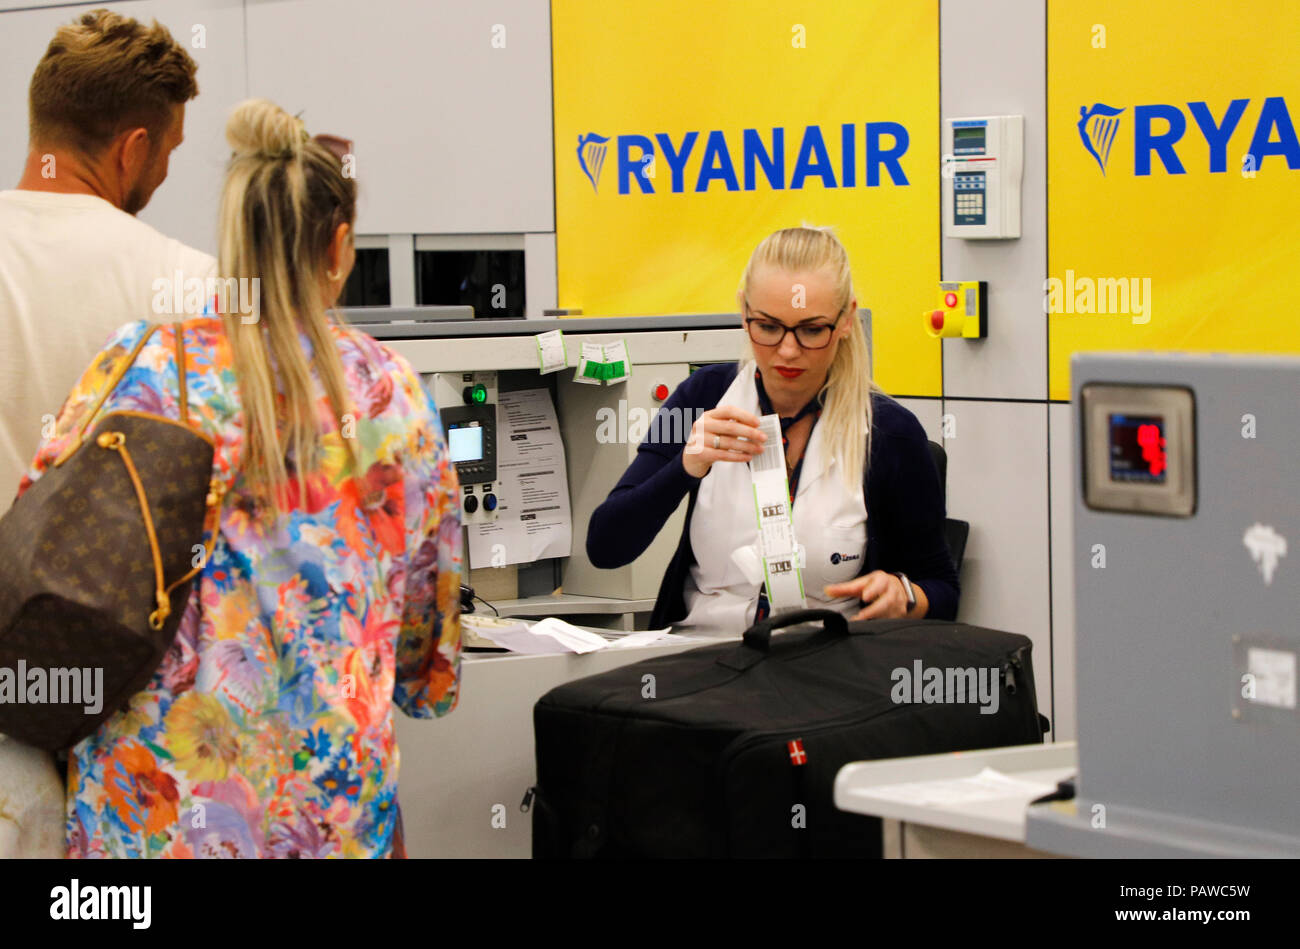 Mallorca, Spain.  25 July 2018, Mallorca, Spain: Airport employee attaches a luggage tag to a Ryanair check-in counter at Palma de Mallorca airport. The start of a two-day strike by cabin crew at the low-cost airline Ryanair has caused great displeasure among countless travellers in several European countries. The most cancellations occurred in Spain, where Ryanair cancelled 200 flights - just under a quarter of all connections. Credit: dpa picture alliance/Alamy Live News - Stock Image